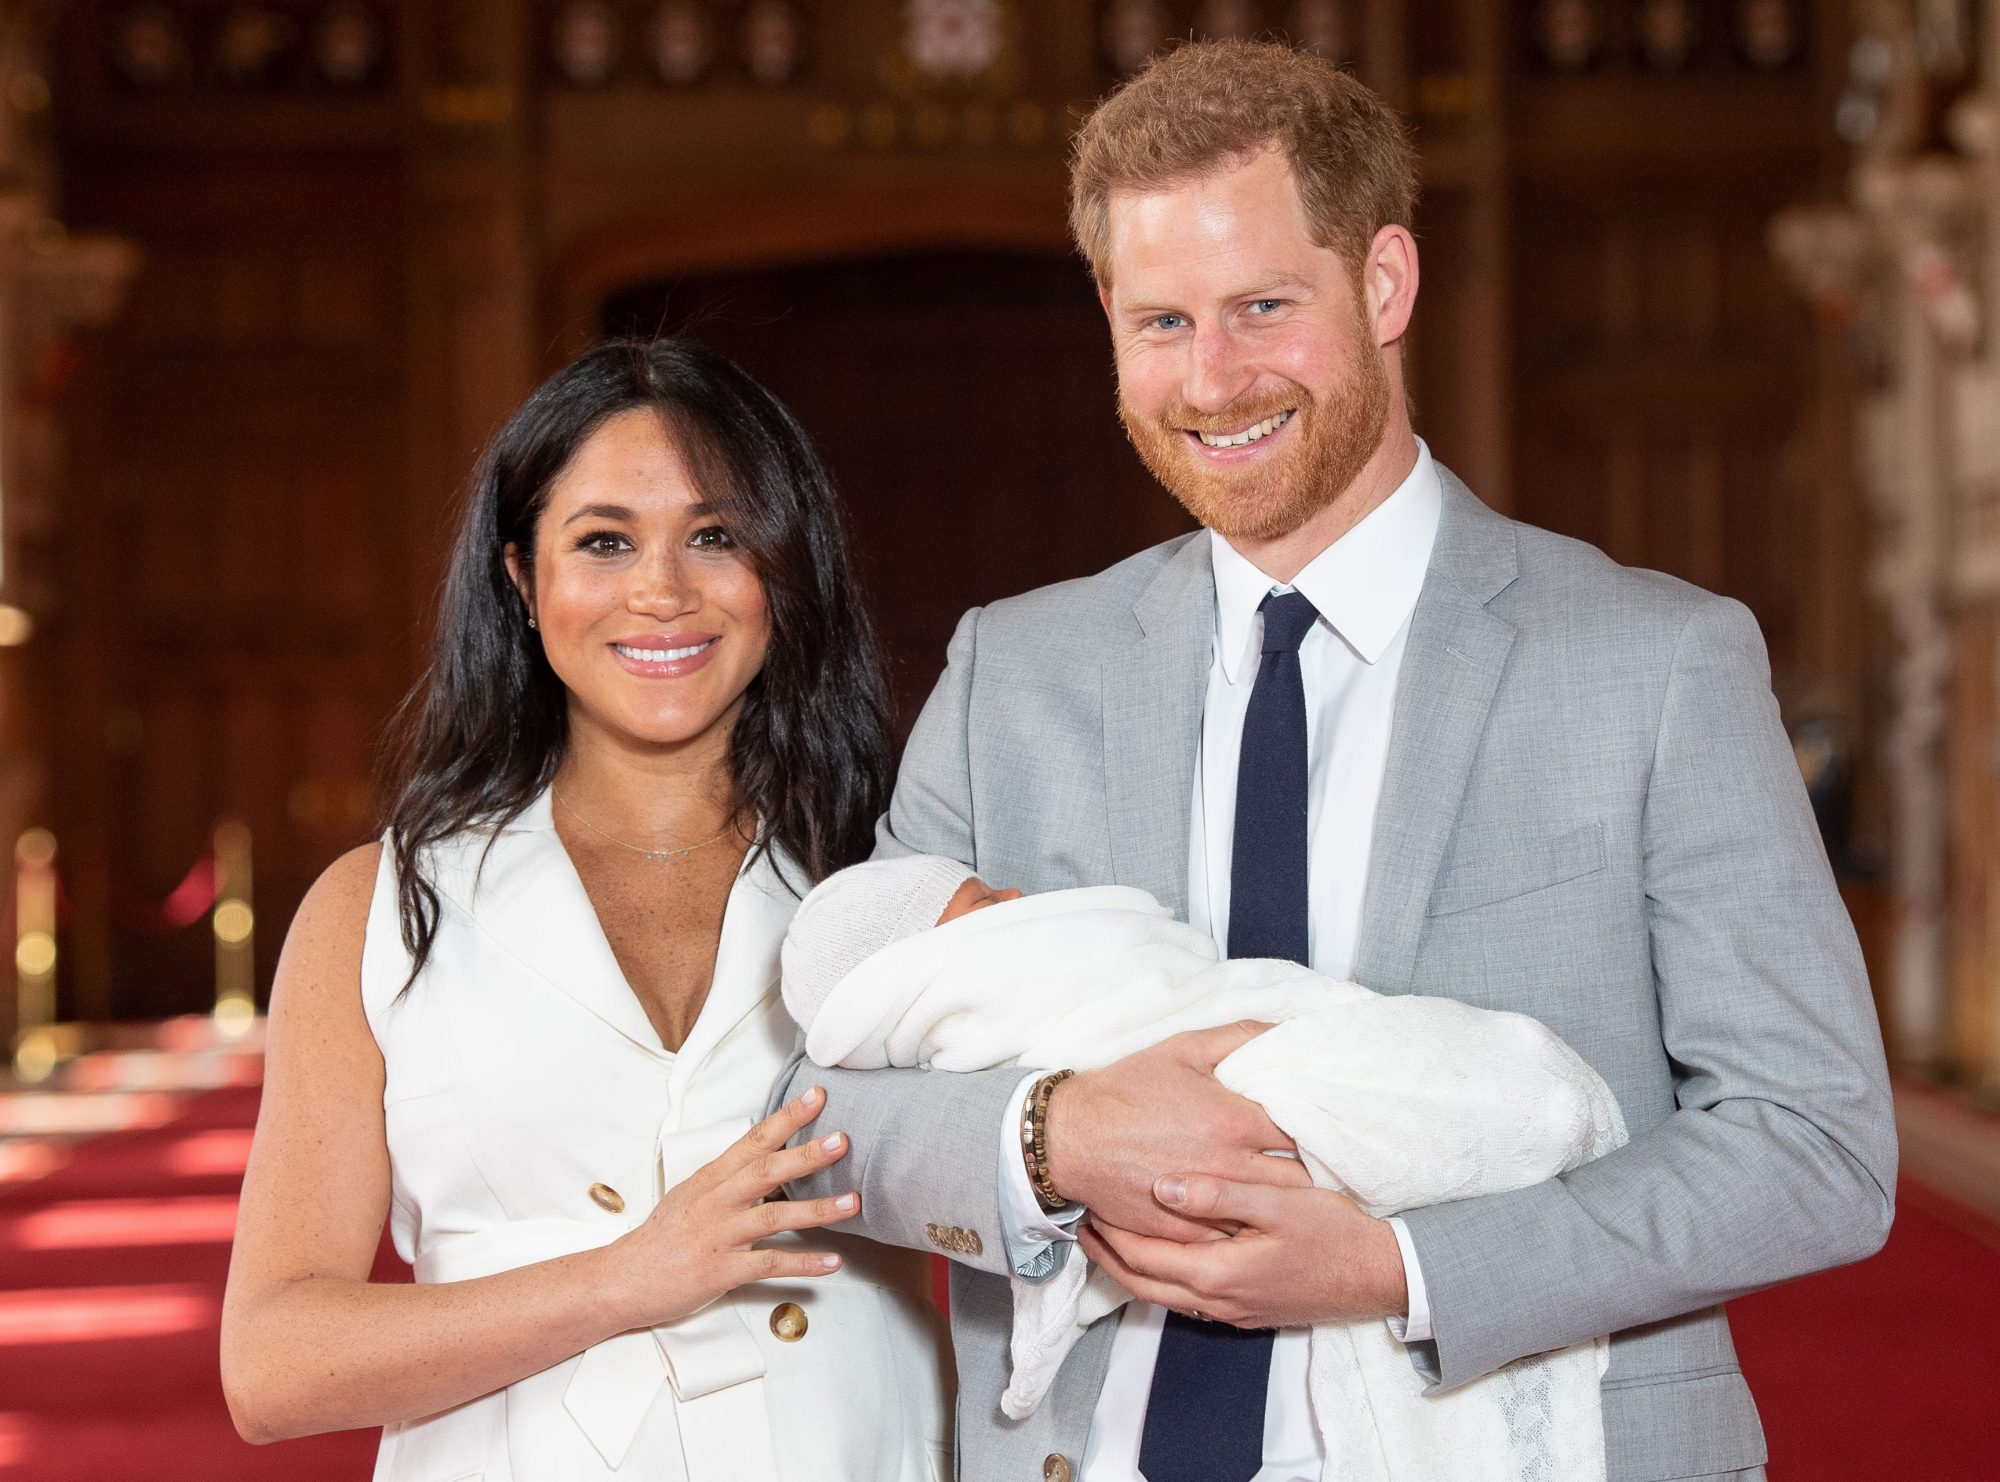 Watch as Winnie the Pooh Celebrates the Royal Baby in Touching Video